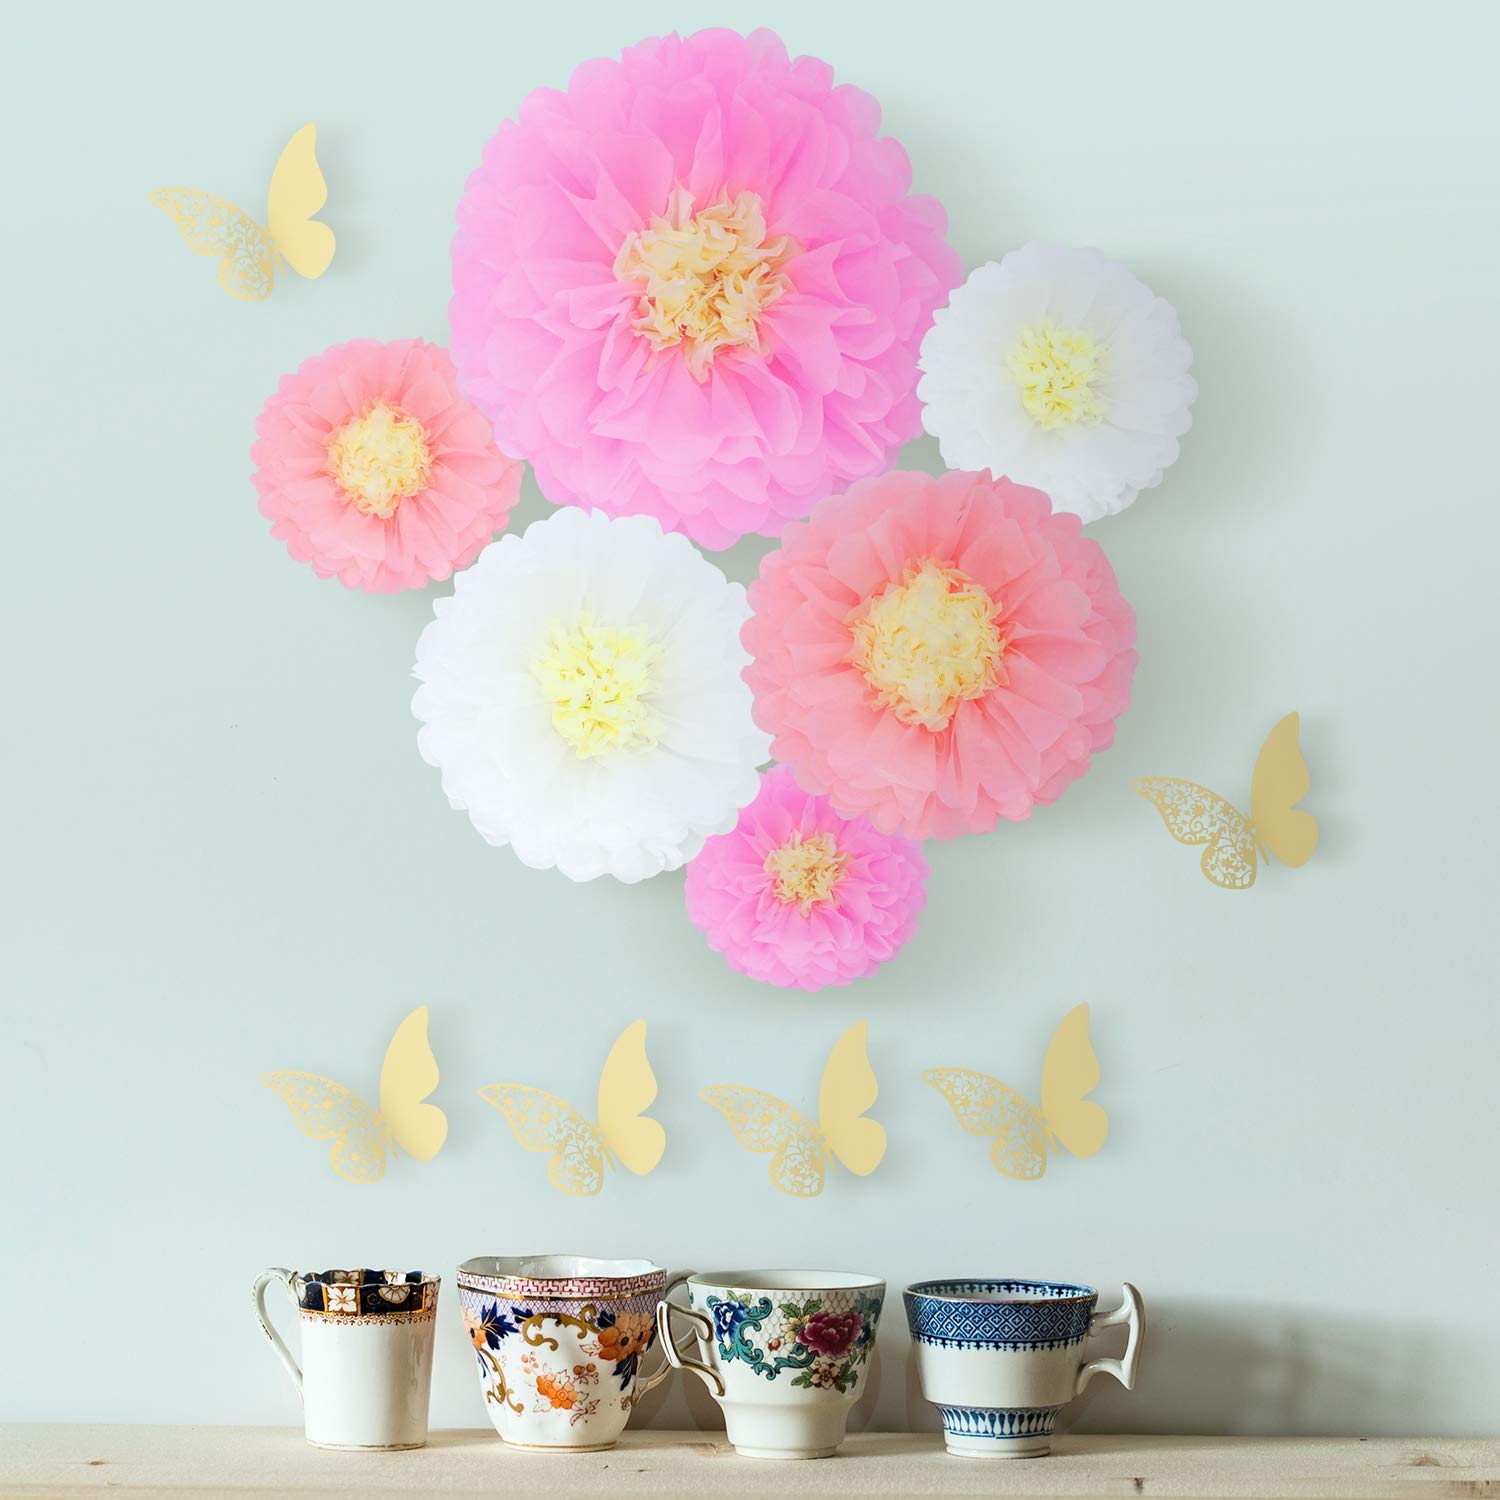 18 Pieces 3D Paper Flowers Blush Pink White Gold Large Wall Decorations 12\